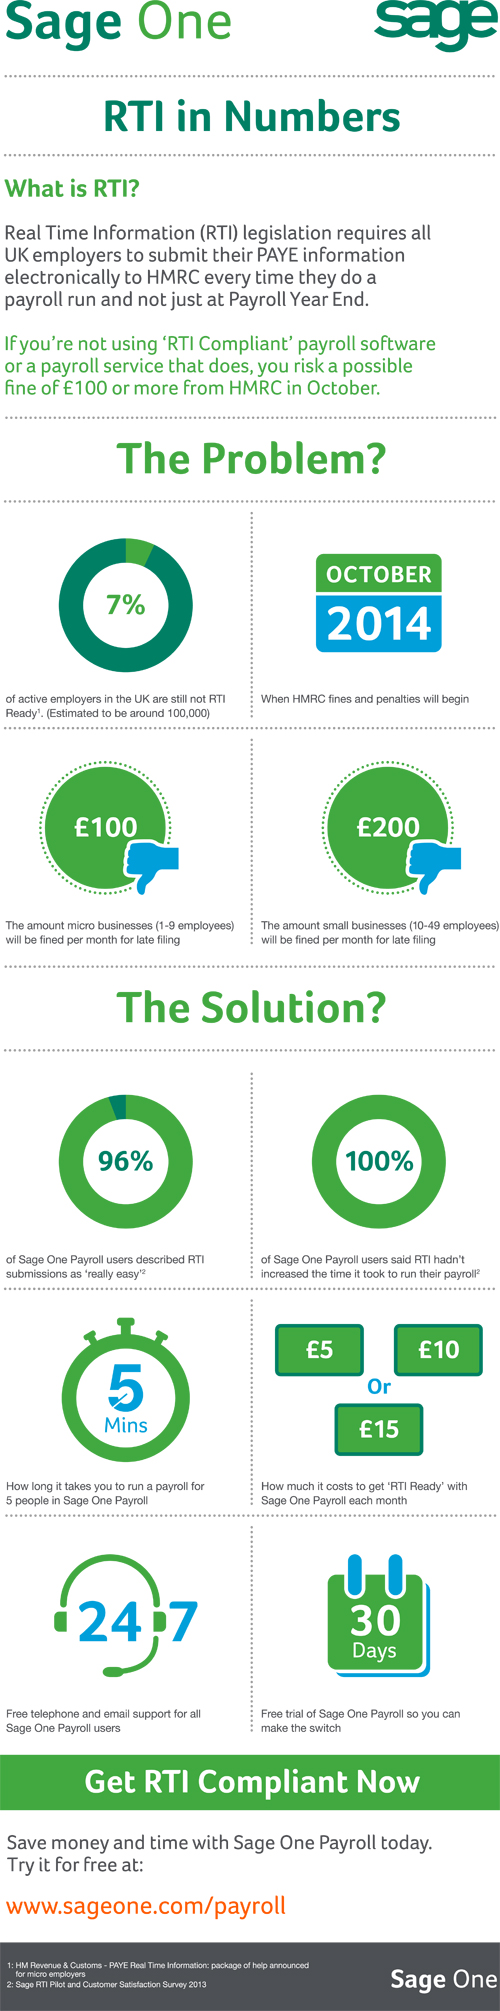 Rti In Numbers Business Infographic Sage One Rti